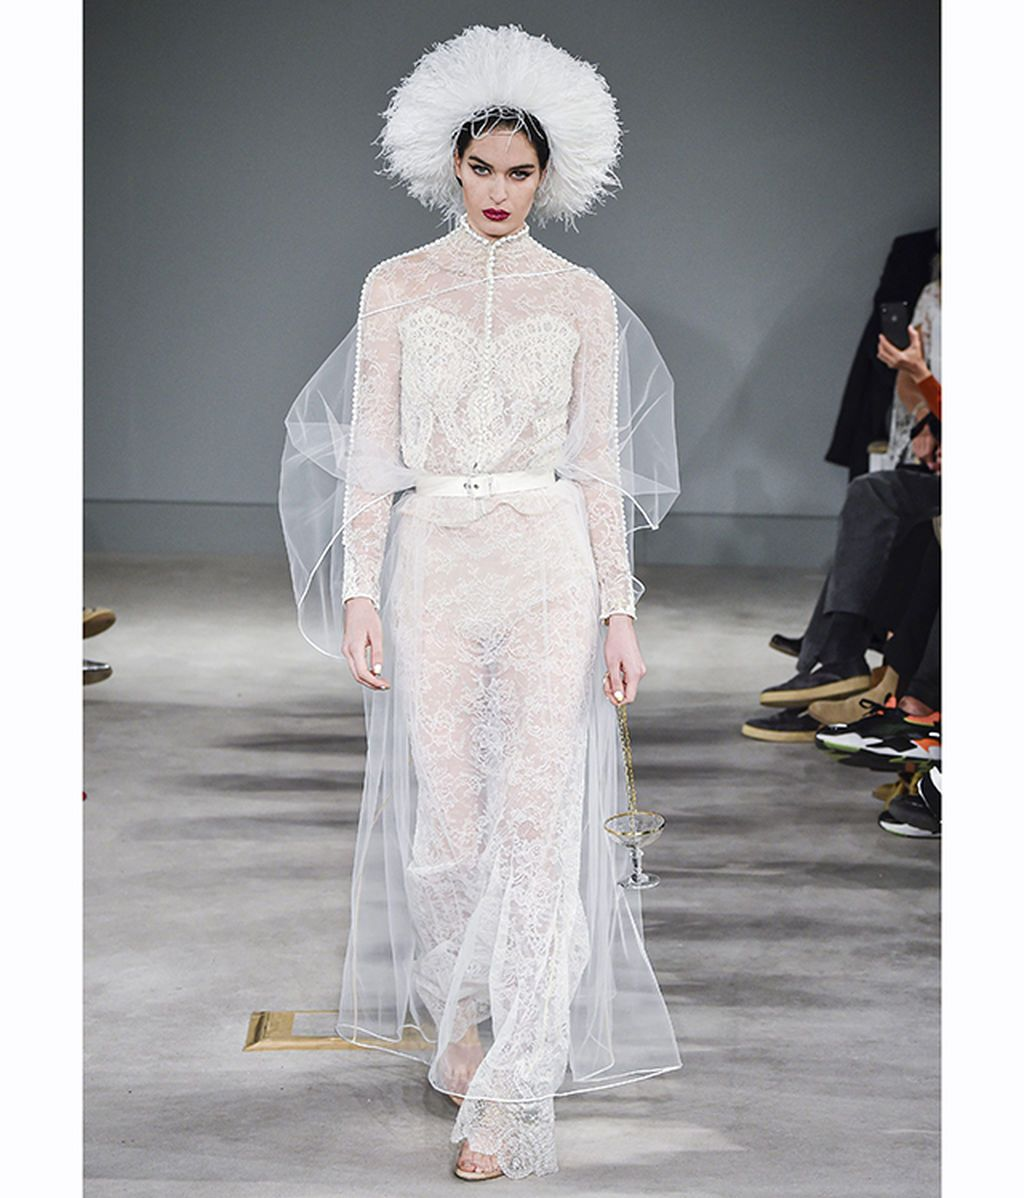 02-hc Alexis Mabille